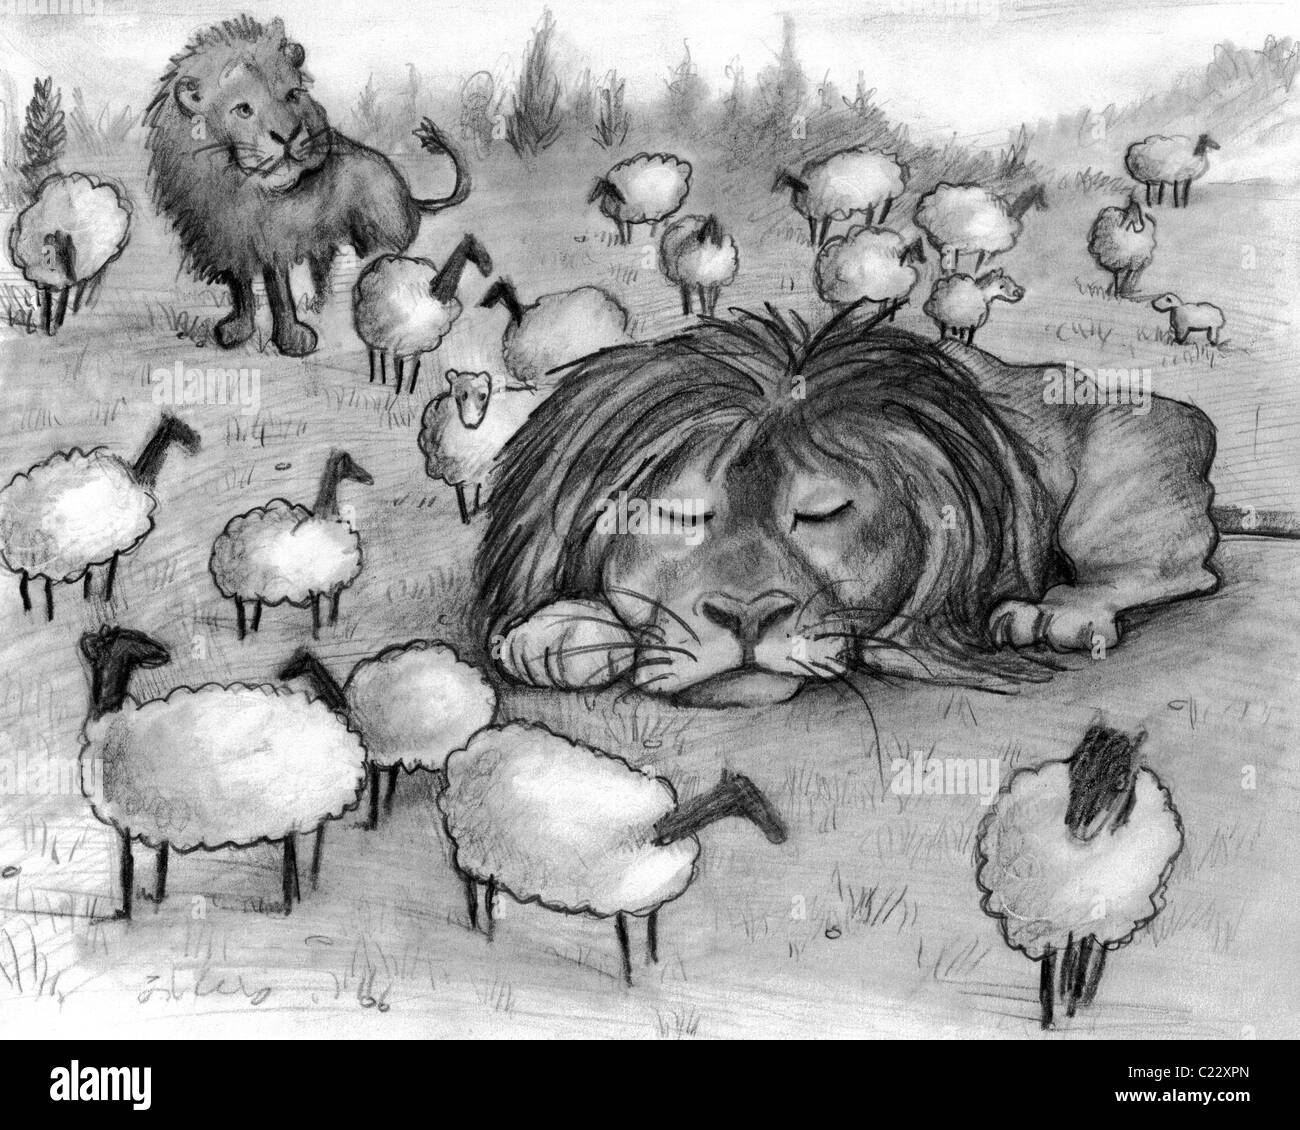 Kindness has strength. Illustration of two lions and many lambs at peace with one another in the same field. Famous - Stock Image